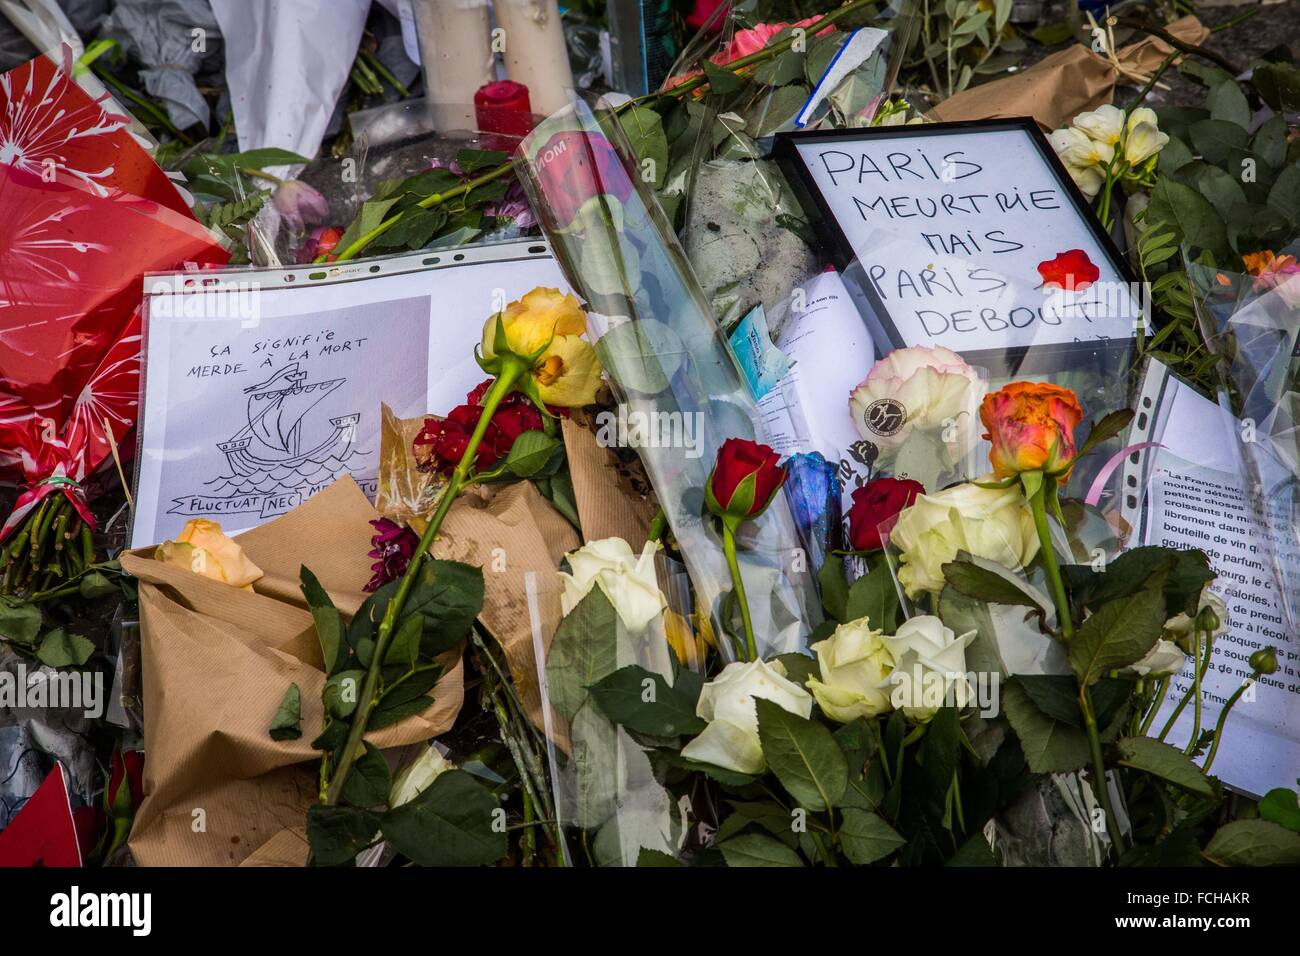 PARIS TERRORIST ATTACKS COMMITTED BY MEMBERS OF ISIS, ISLAMIC STATE, 11TH ARRONDISSEMENT, PARIS (75), ILE DE FRANCE, - Stock Image